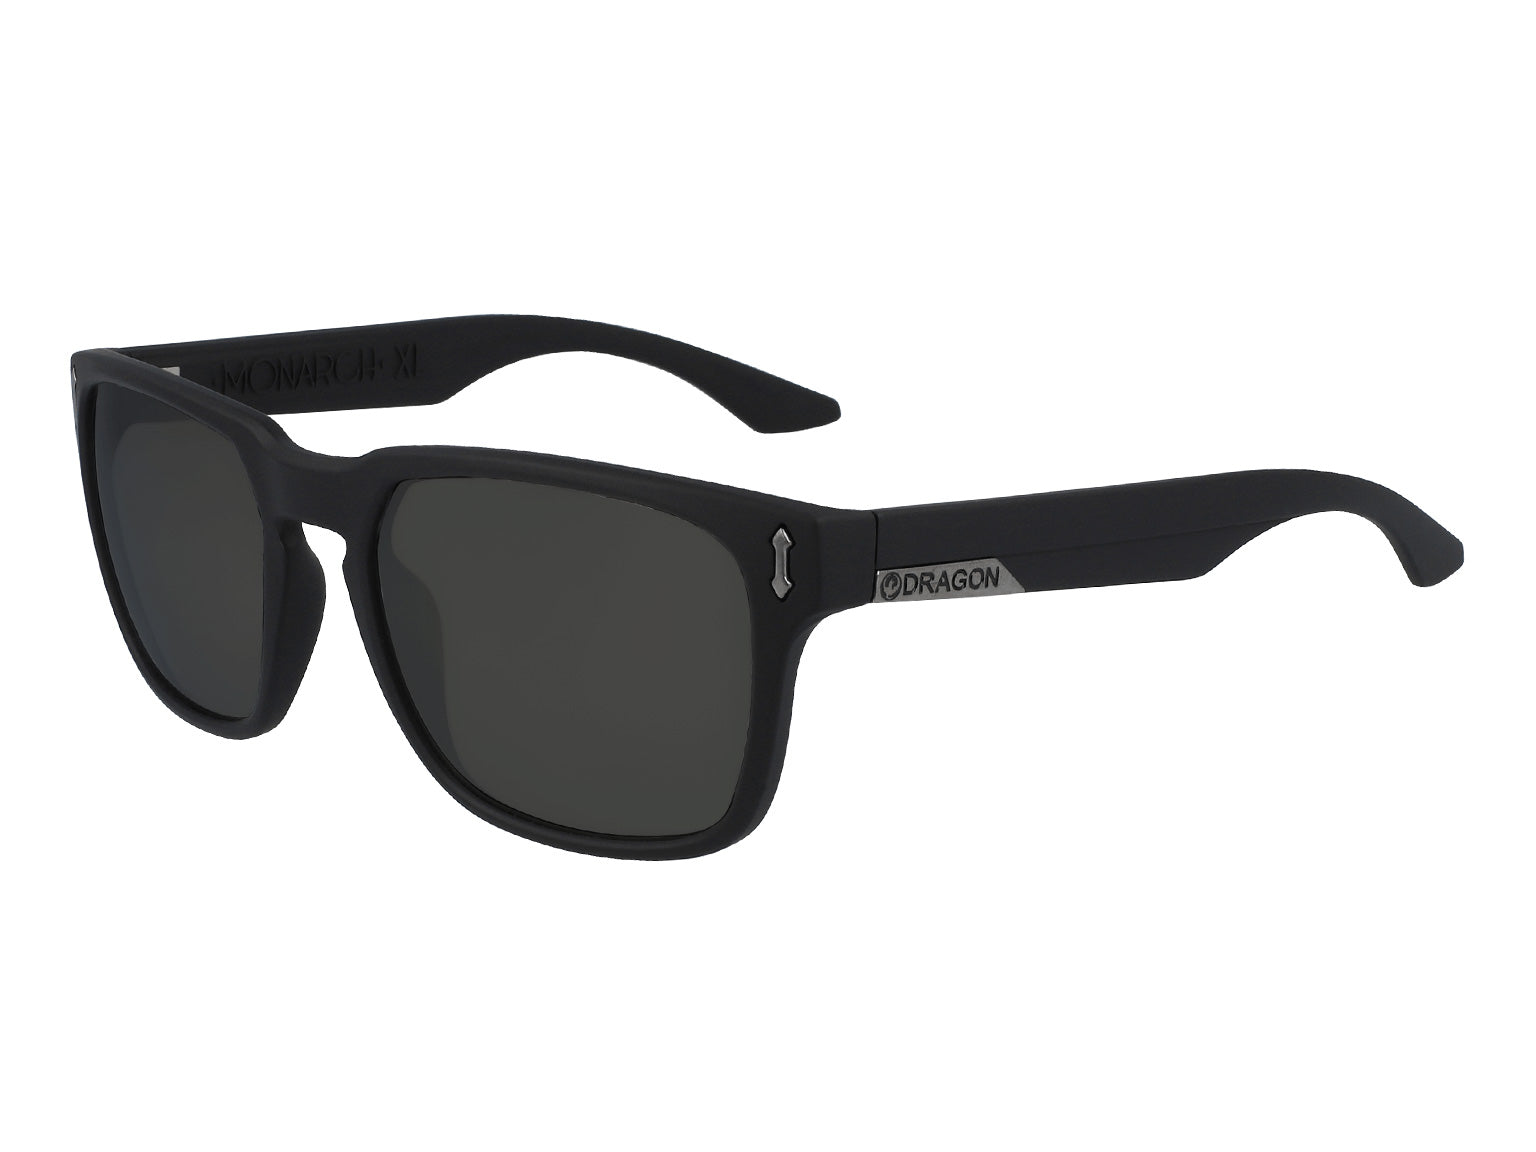 MONARCH XL - Black with Lumalens Smoke Lens